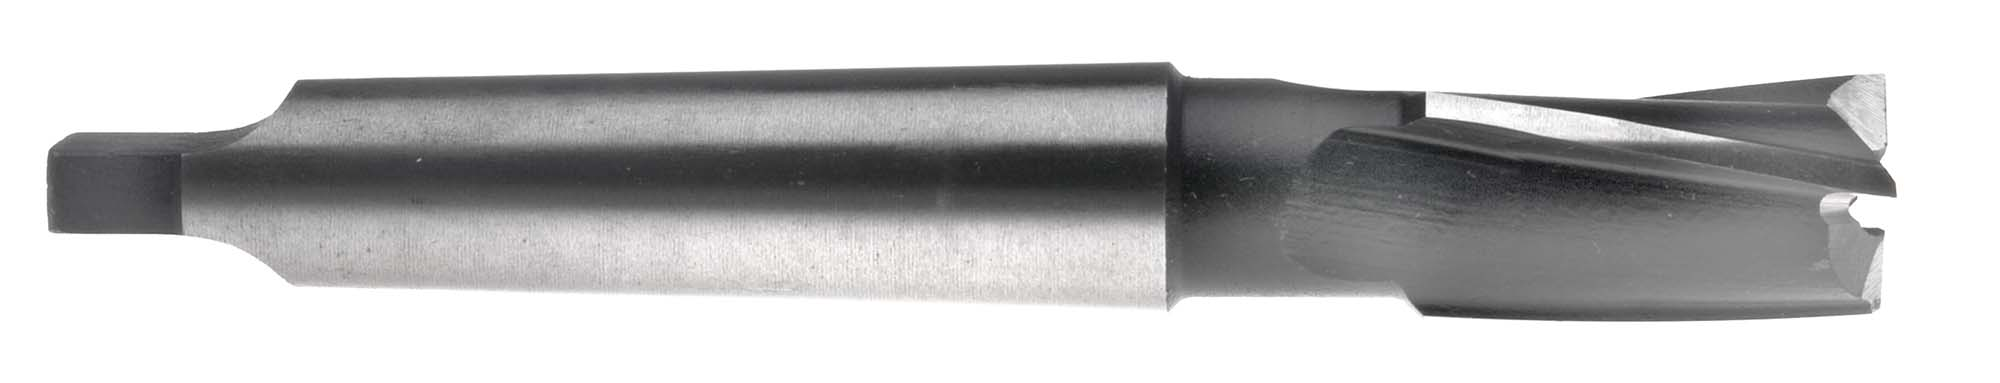 "1-5/16"" Taper Shank Counterbore, Interchangeable Pilot Type, High Speed Steel"